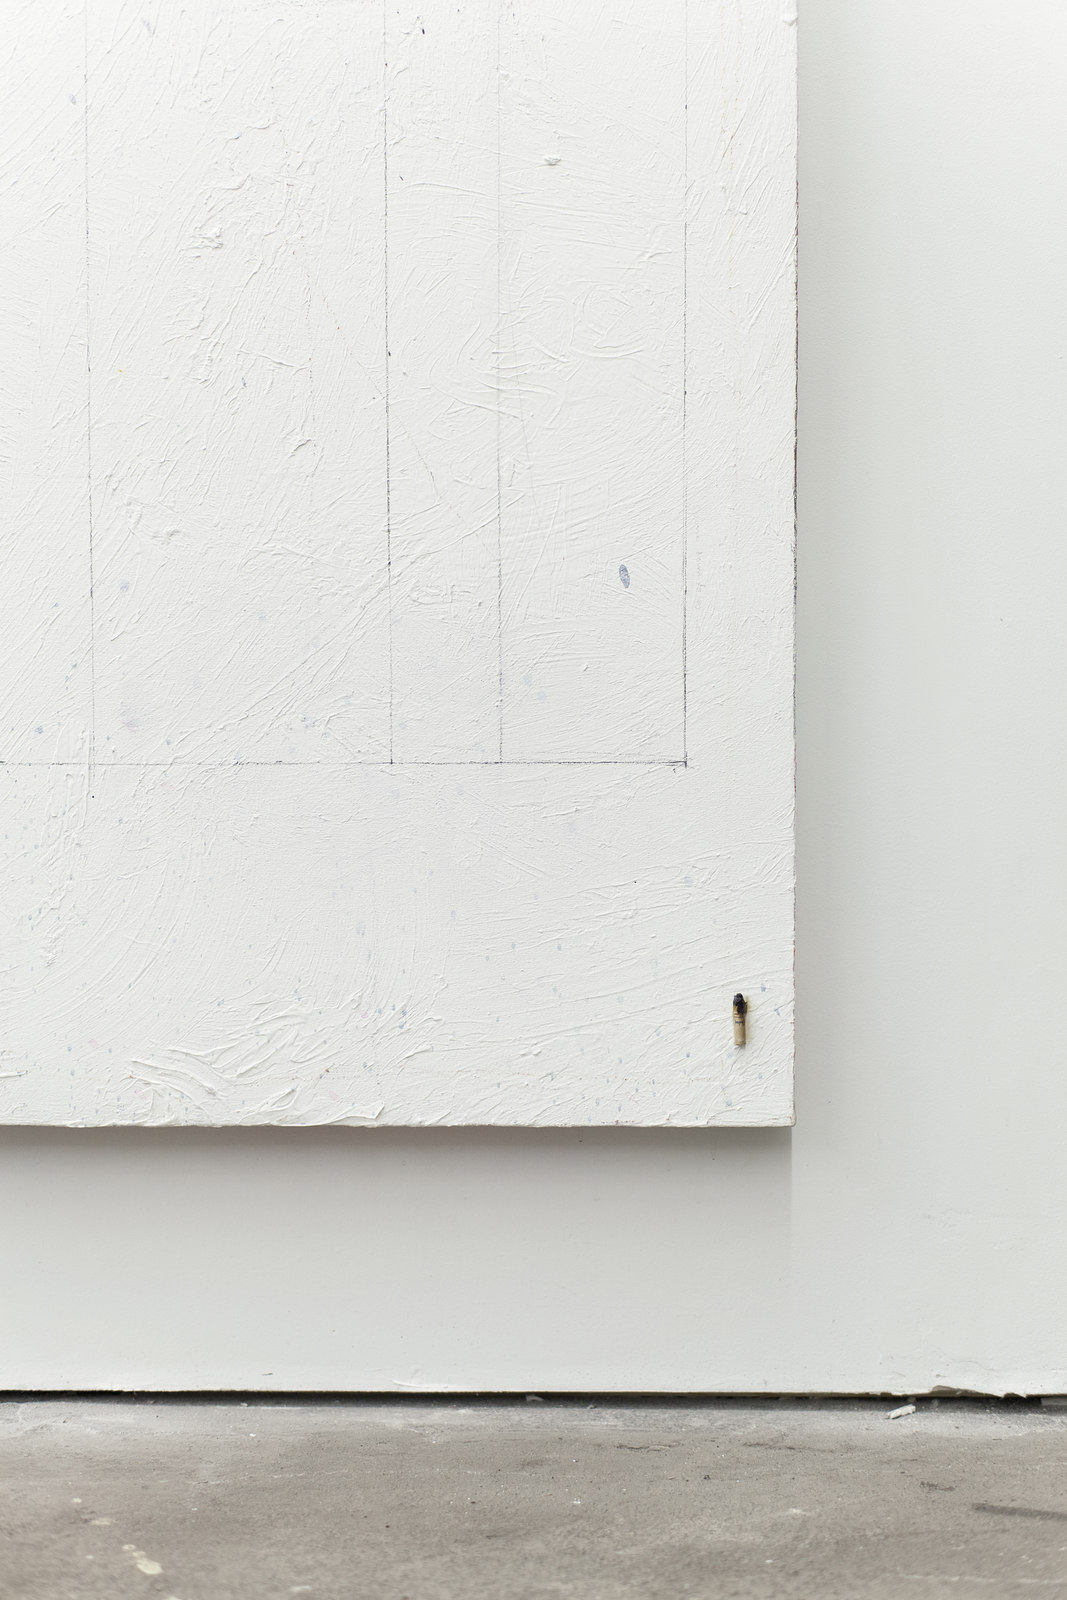 023_Jean-François Lauda. Untitled 39. Acrylic on canvas, collage, cigarette butt.213.5 x 183 cm. 2012_2016. (Detail)